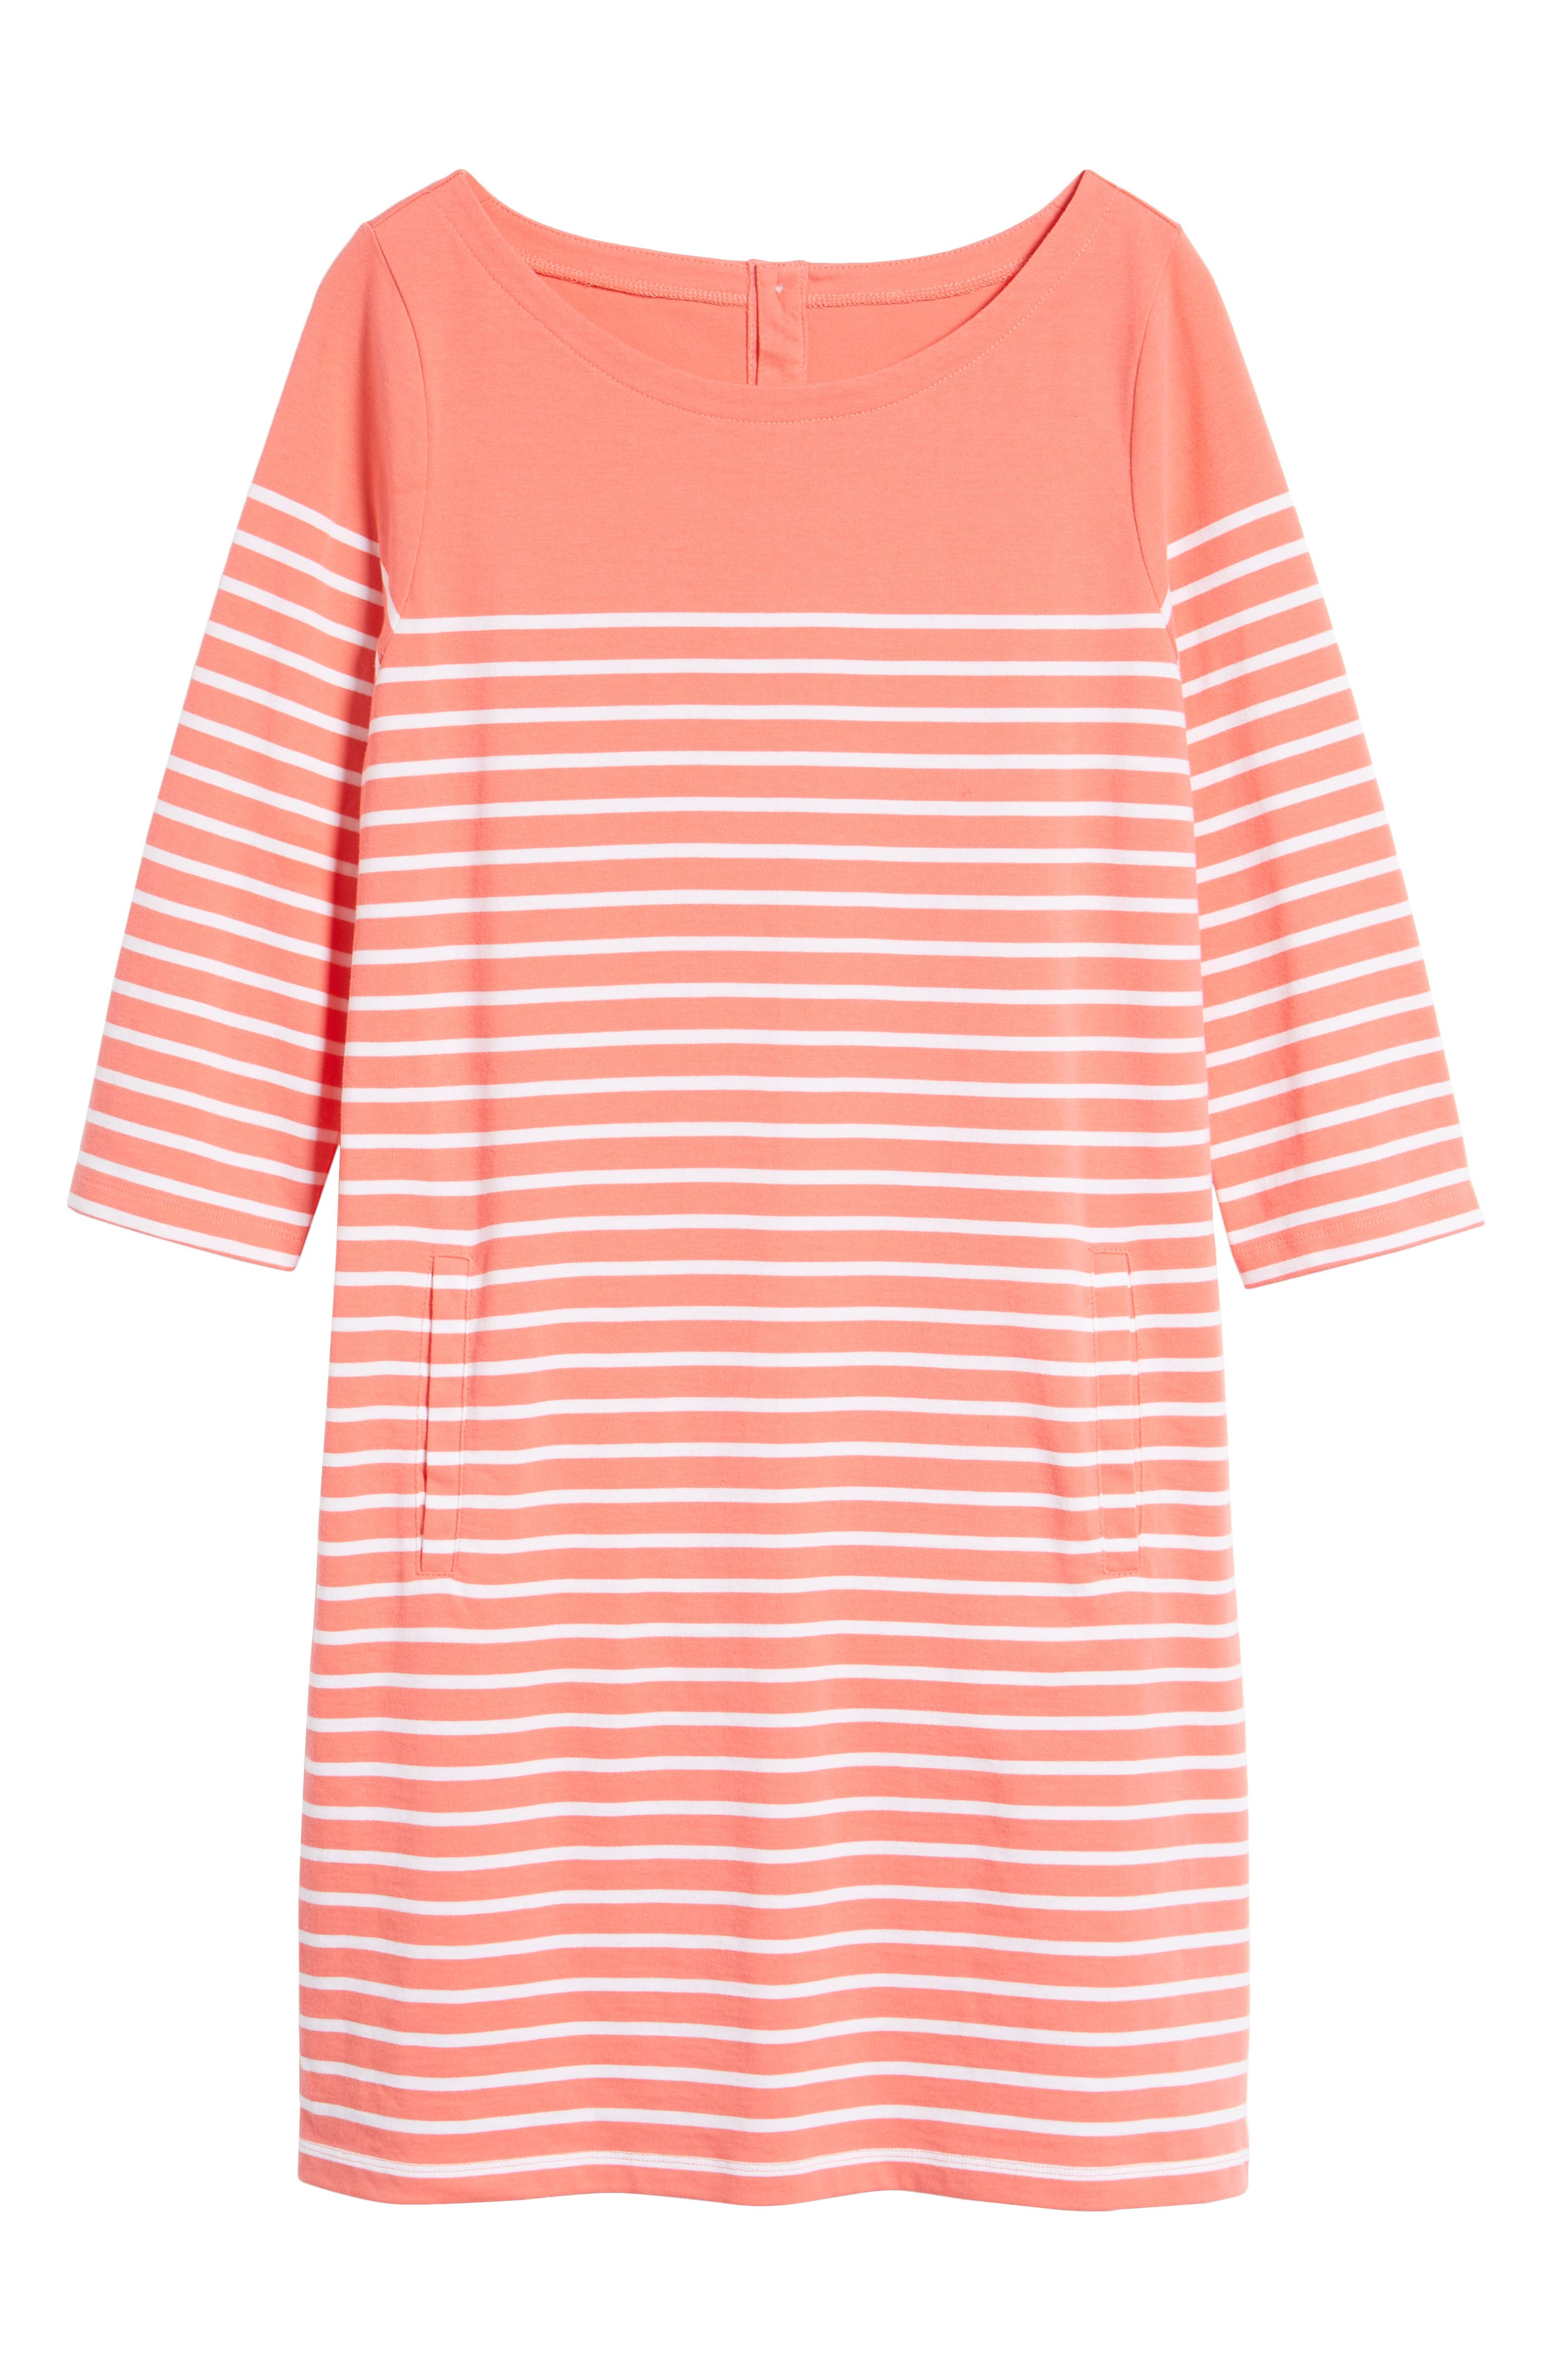 Stripe Cotton Knit Shift Dress,                             Alternate thumbnail 6, color,                             Coral- White Stripe